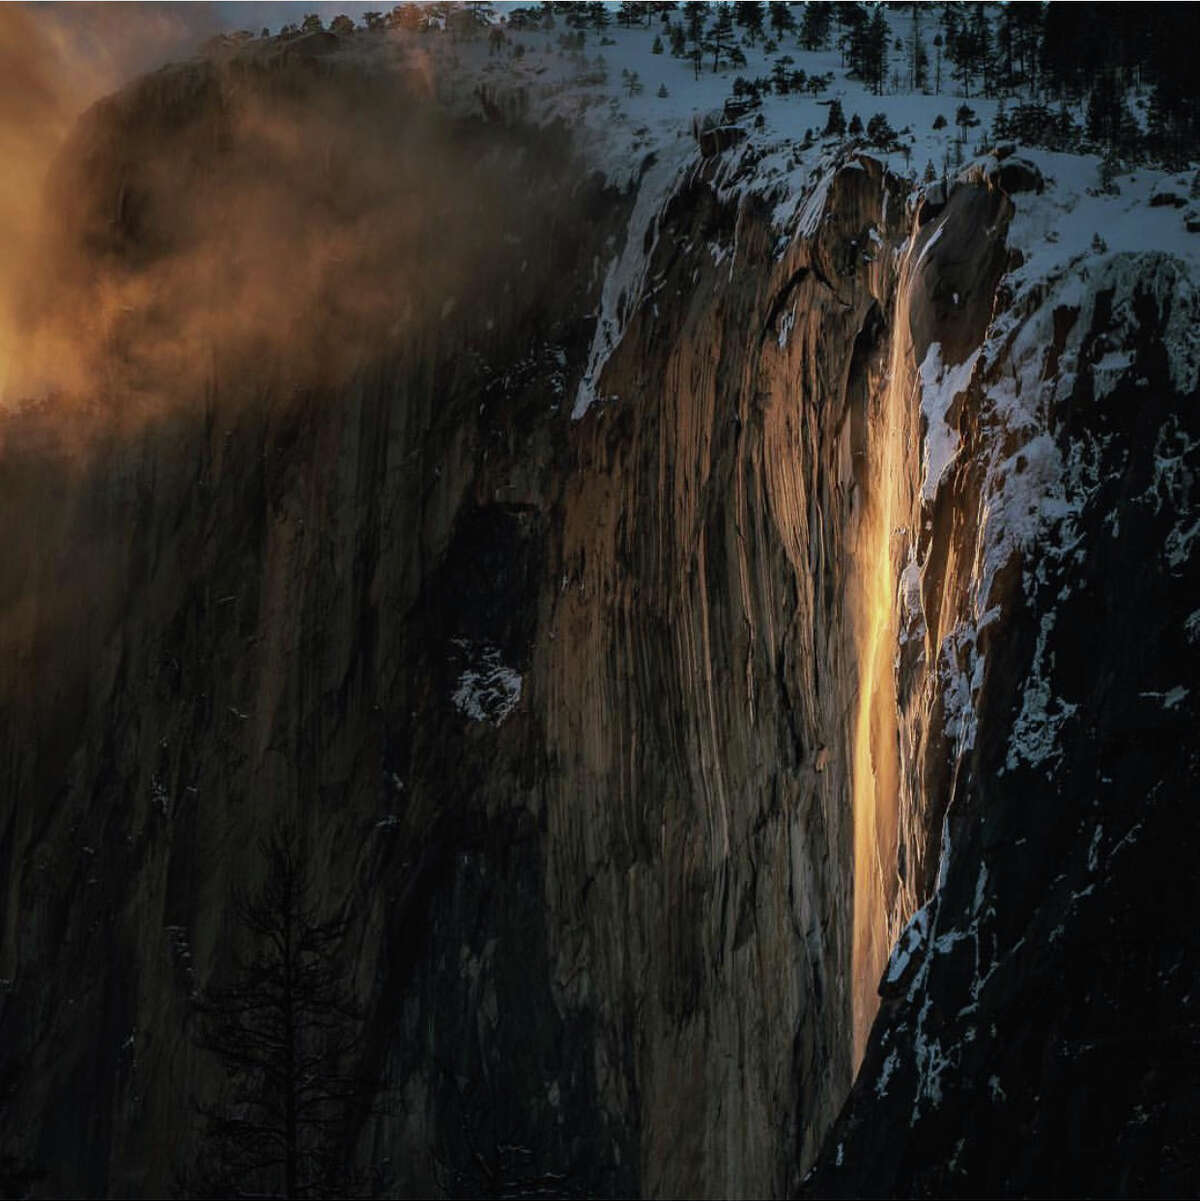 """The Horsetail Fall natural phenomenon commonly known as """"firefall"""" in Yosemite National Park captured on Monday, Feb. 18, 2019. The lava-like effect only occurs in mid-late February when the setting sun hits the waterfall at exactly the right angle."""